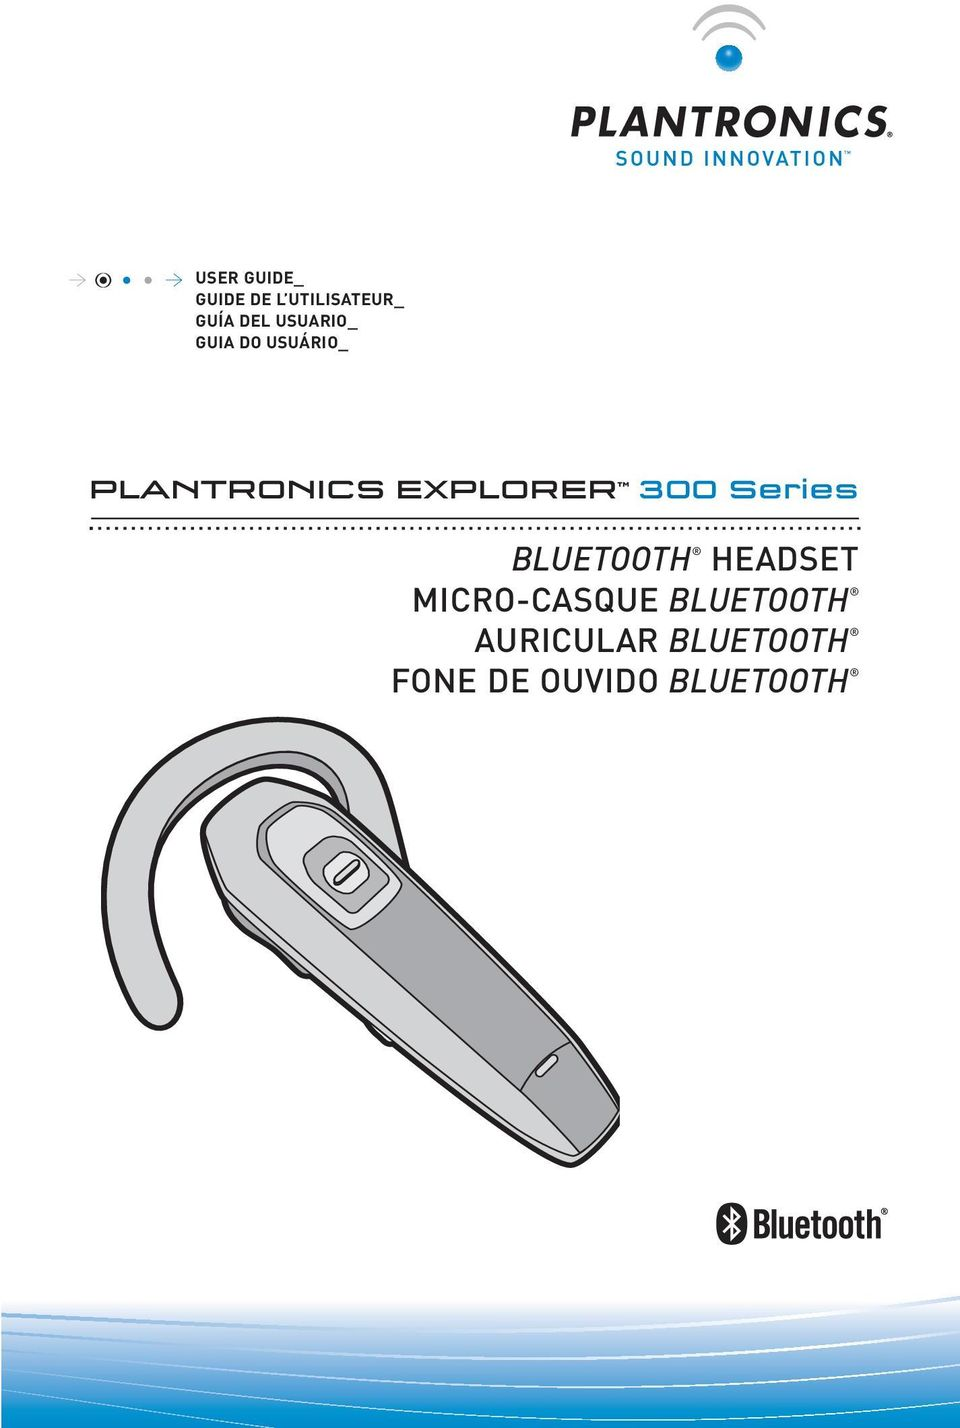 300 Series BLUETOOTH HEADSET MICRO-CASQUE